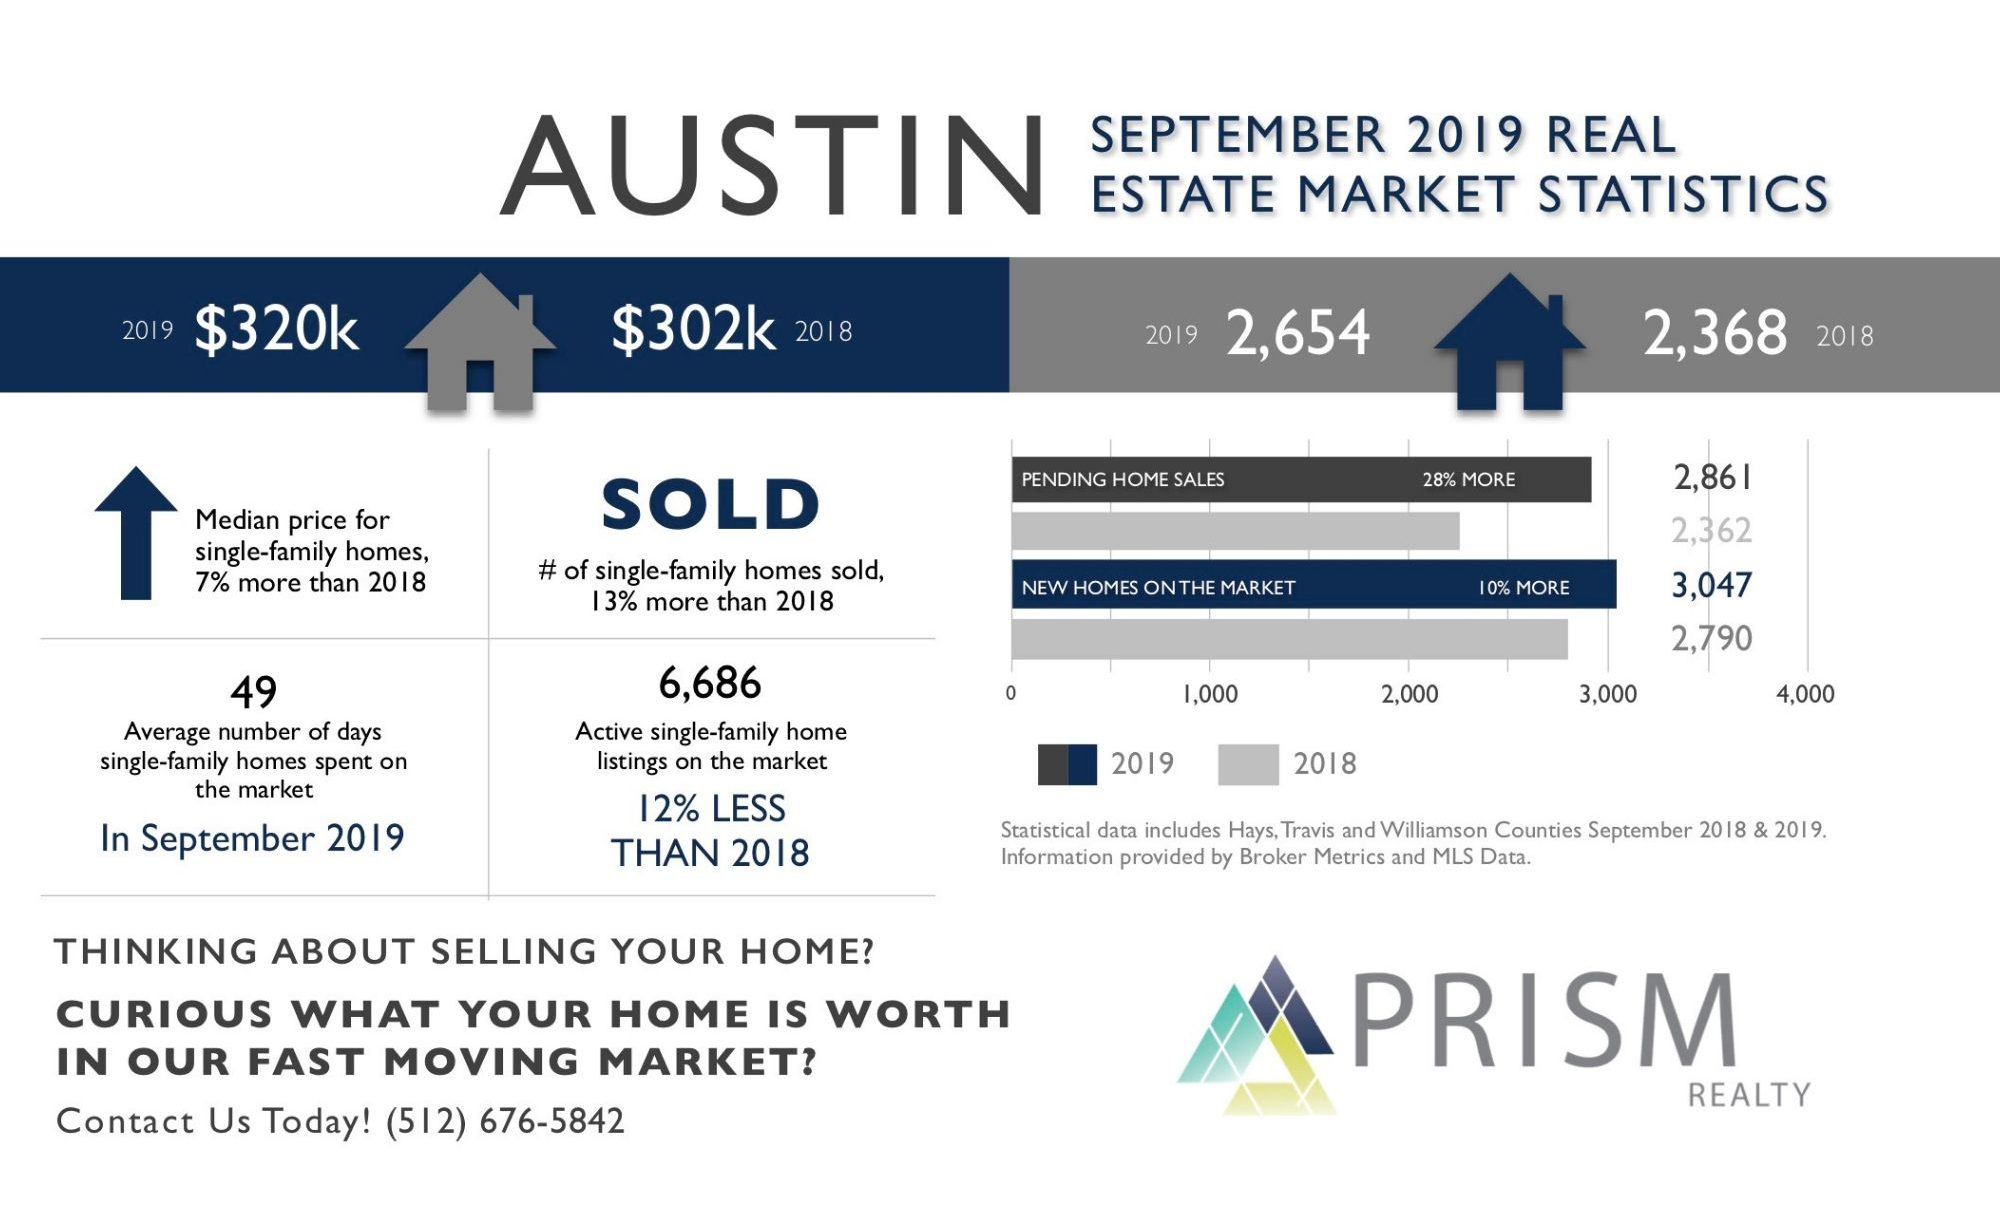 Prism Realty - Austin Real Estate Market Update - September 2019 - Best Austin Real Estate Broker (1)